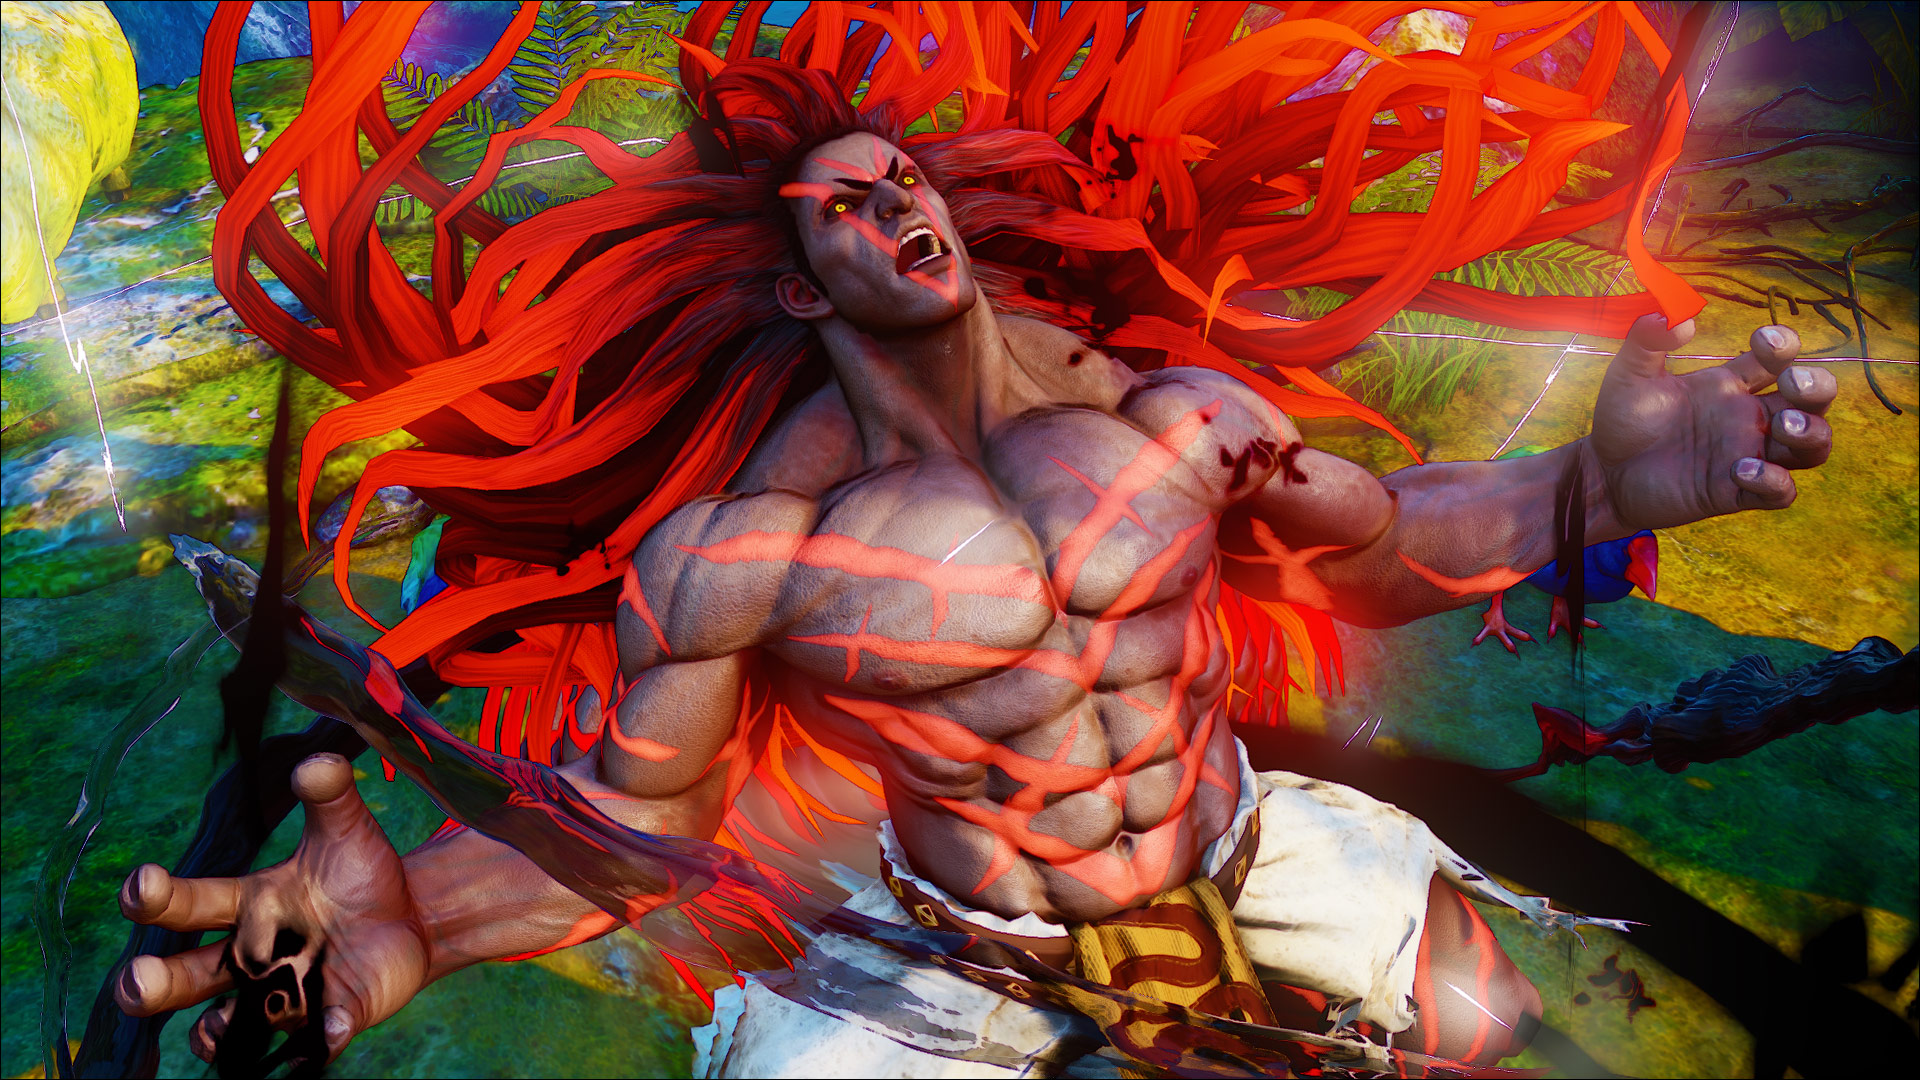 Official screenshots of Necalli in SF5 12 out of 17 image gallery